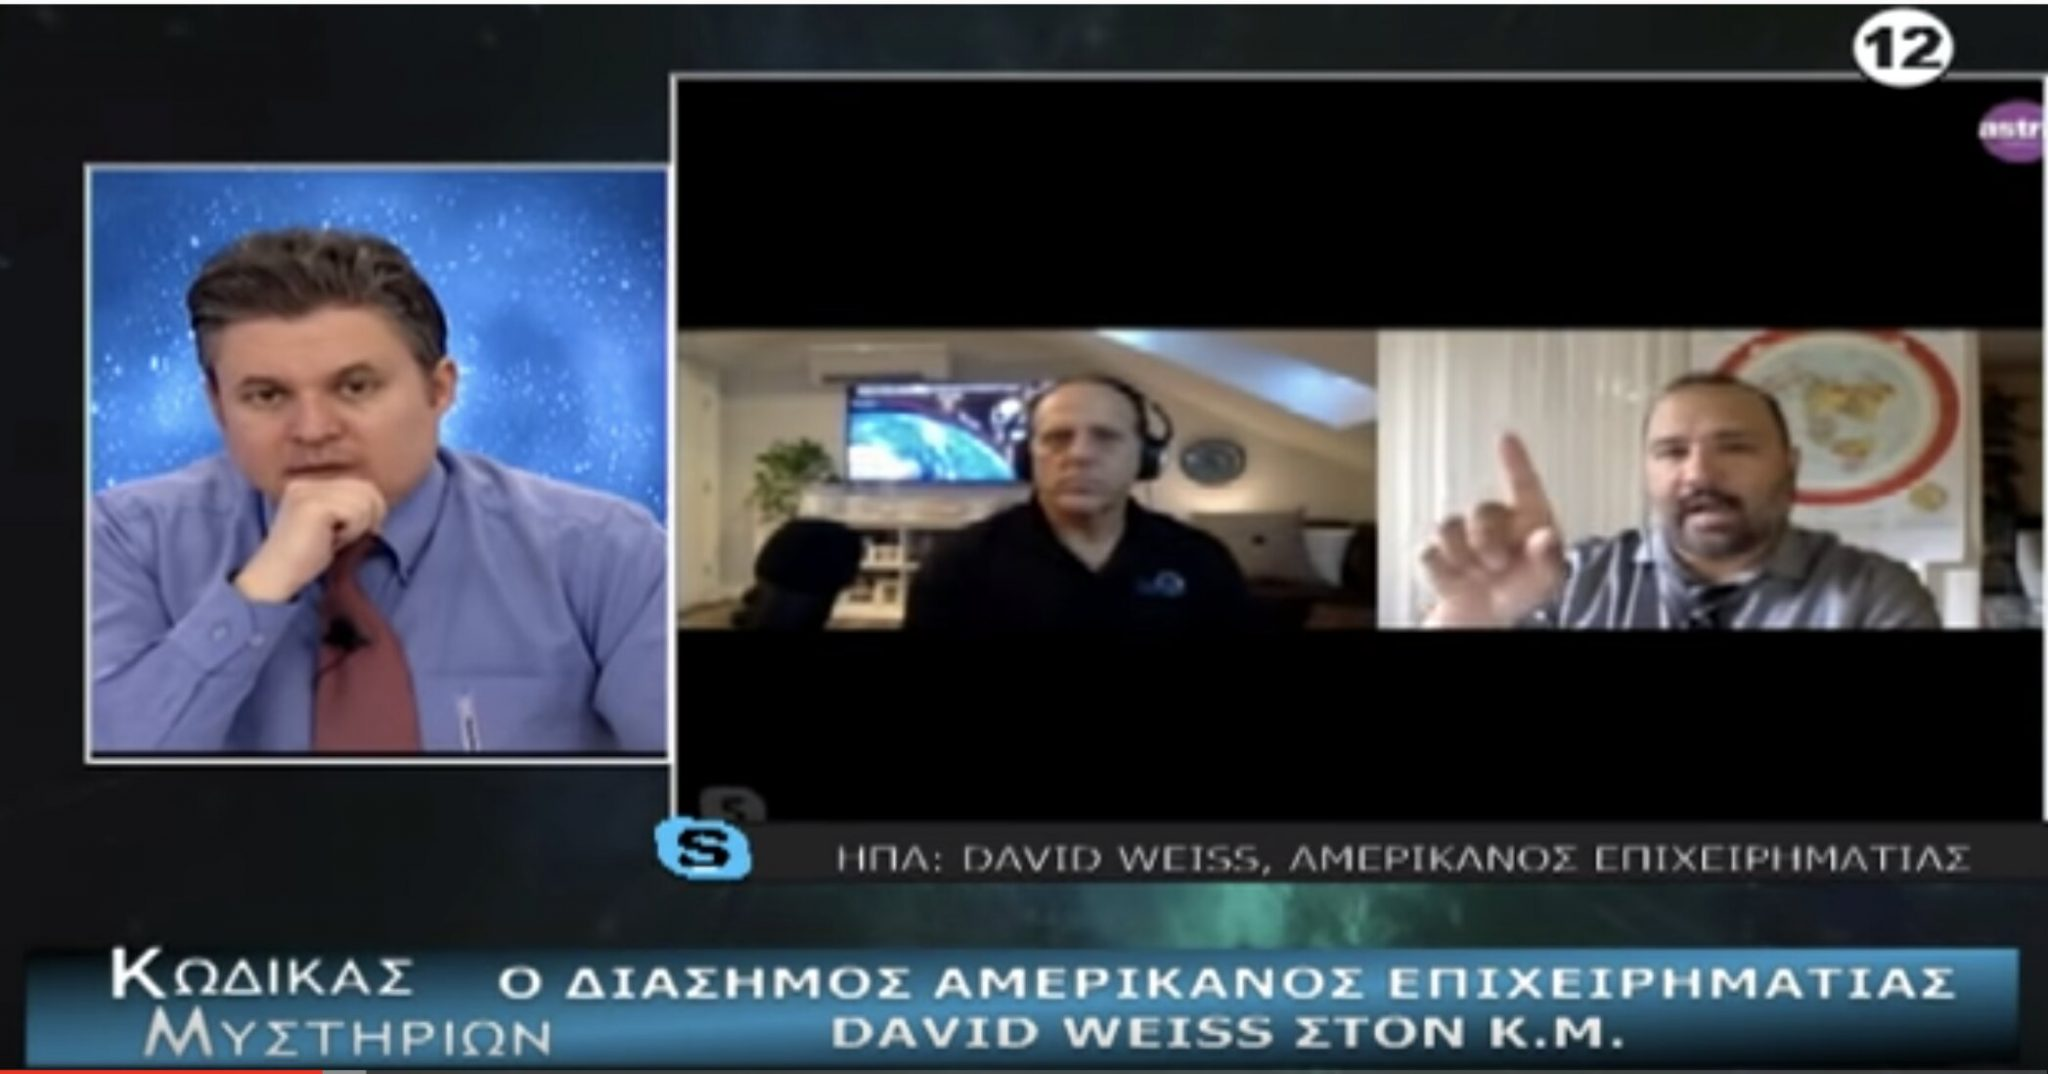 Top flat earth researcher David Weiss on Greek TV on the flat earth